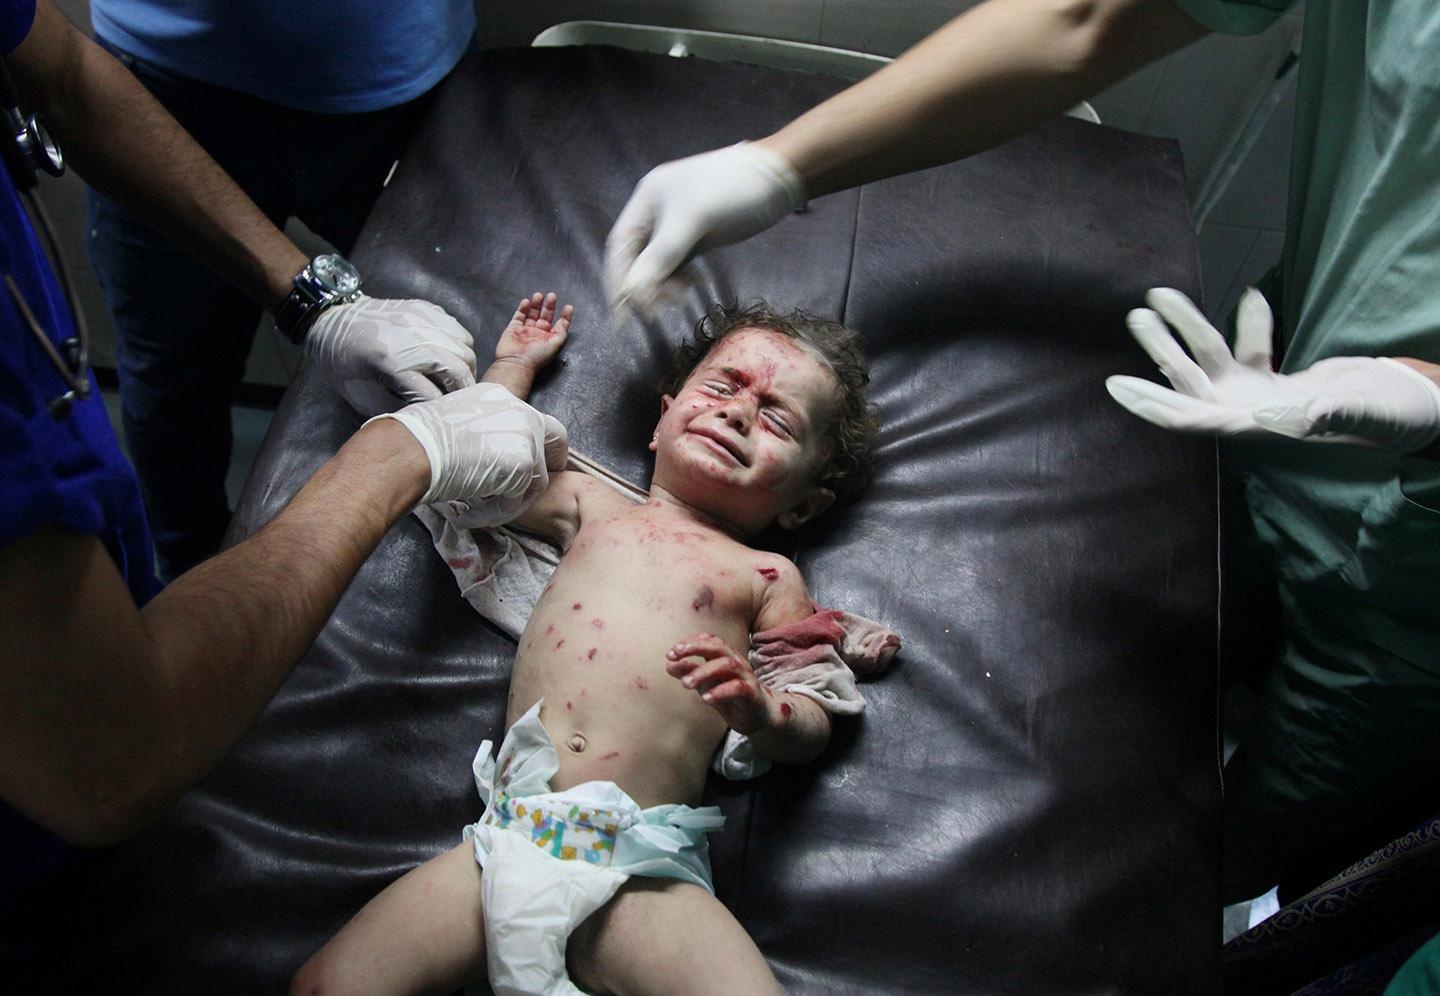 A Palestinian baby, injured in an Israeli airstrike.